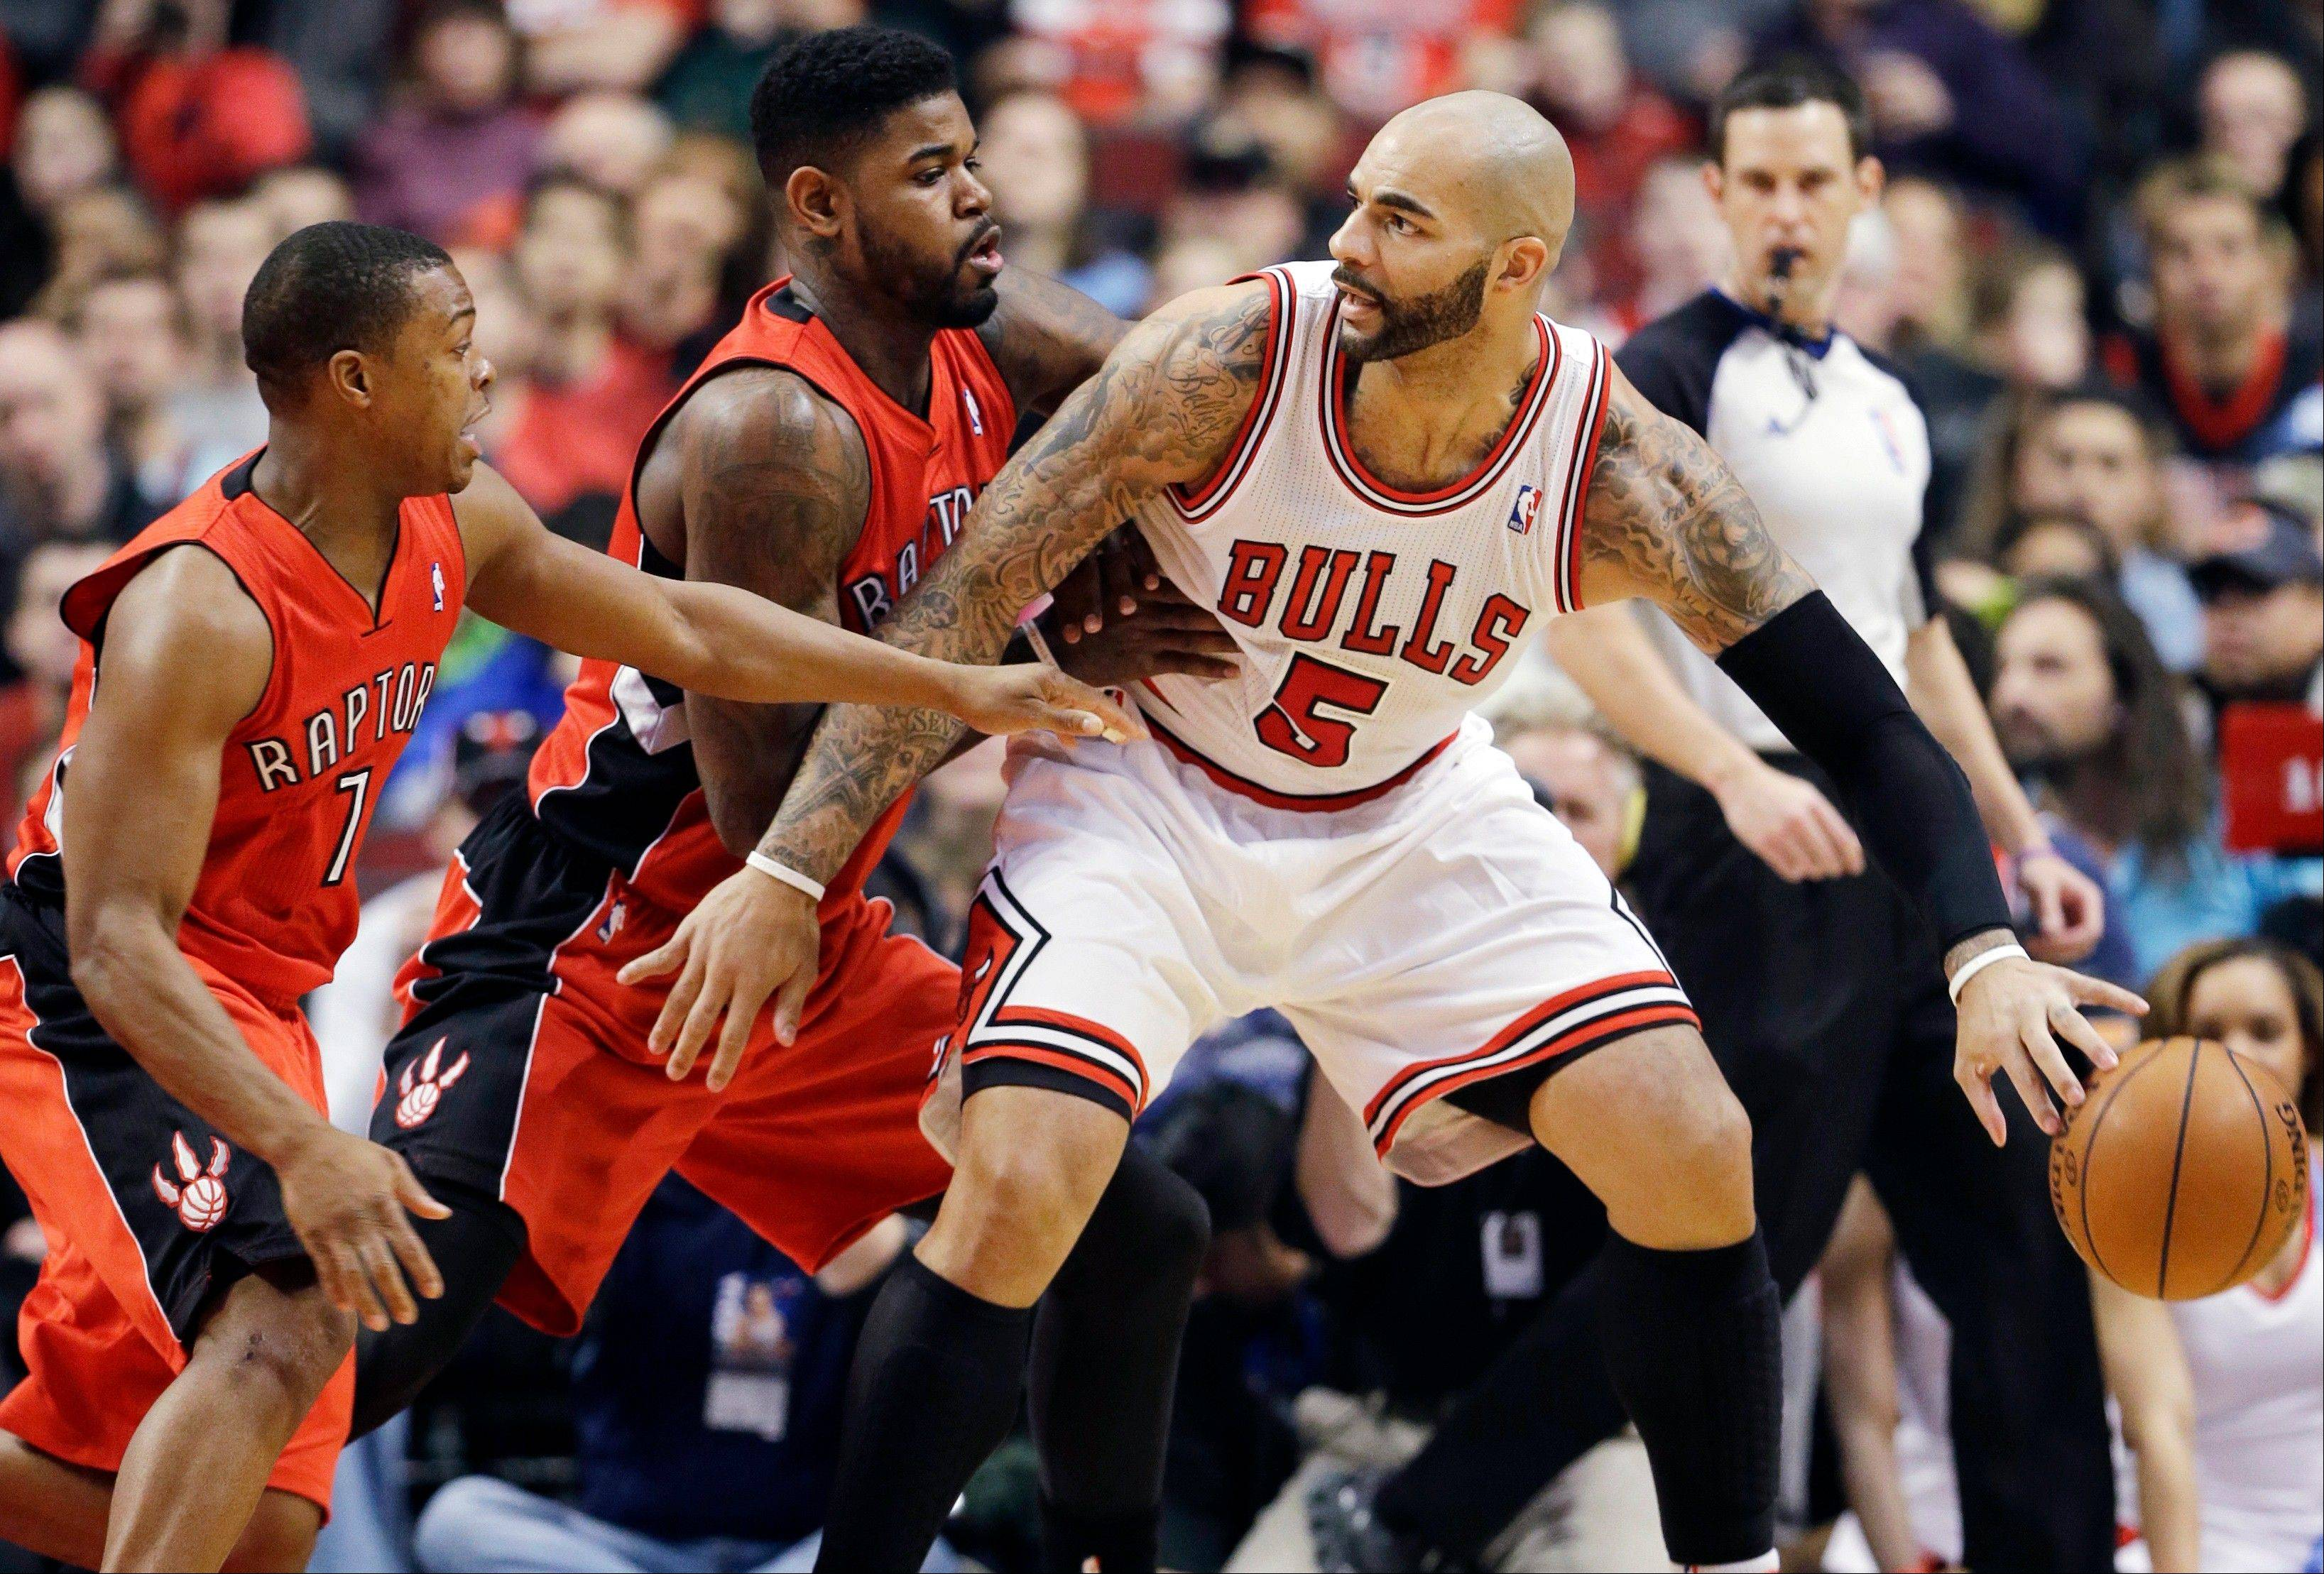 Bulls forward Carlos Boozer, right, controls the ball as Toronto Raptors forward Amir Johnson, center, and guard Kyle Lowry guard Saturday night at the United Center.